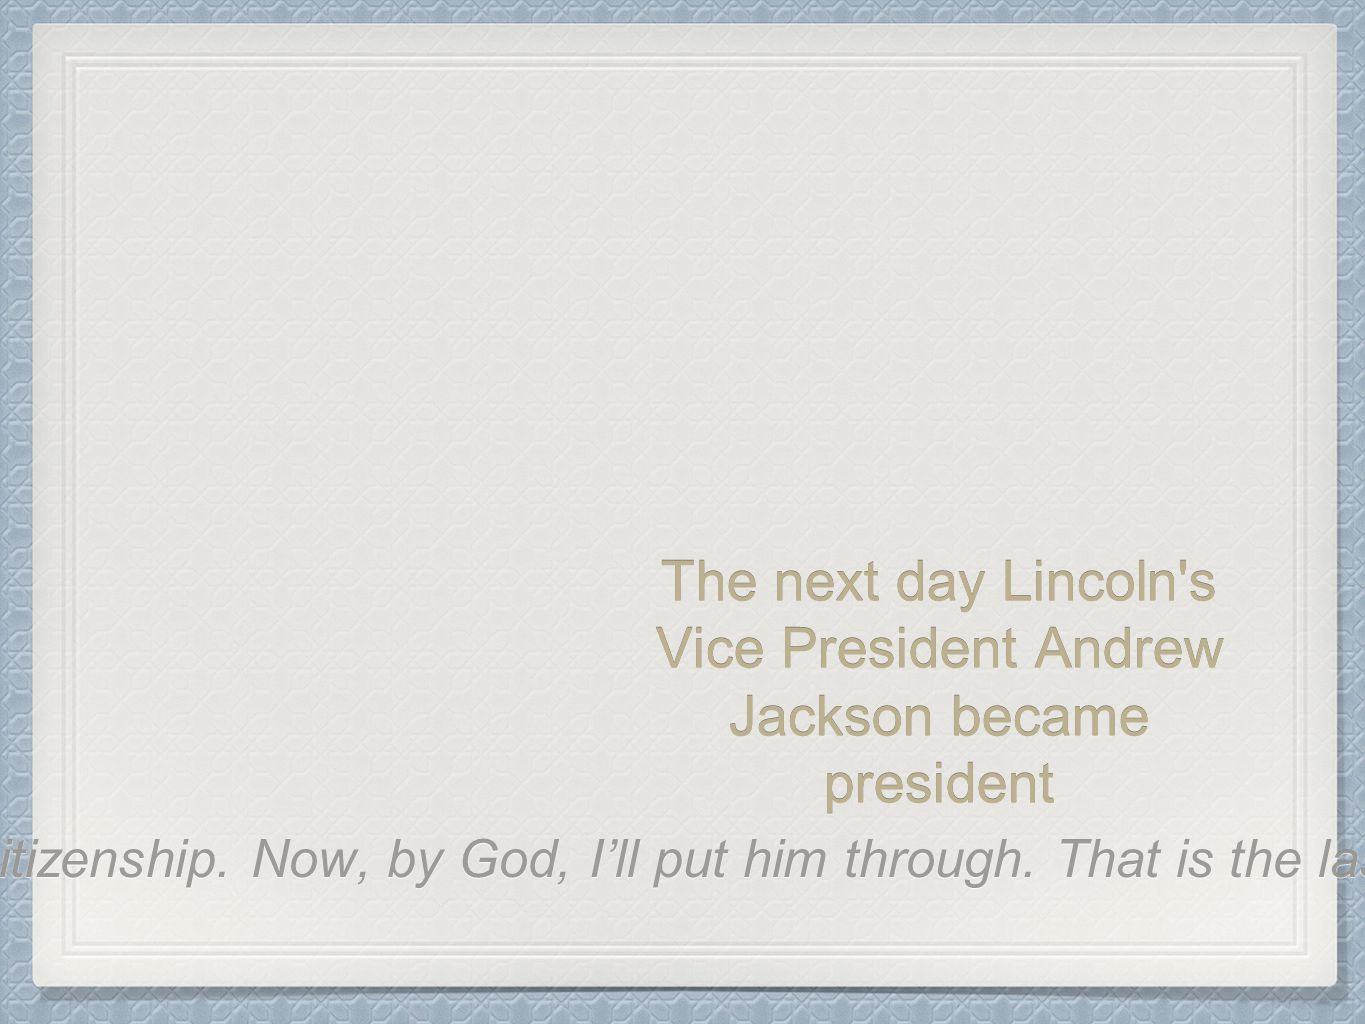 The next day Lincoln s Vice President Andrew Jackson became president